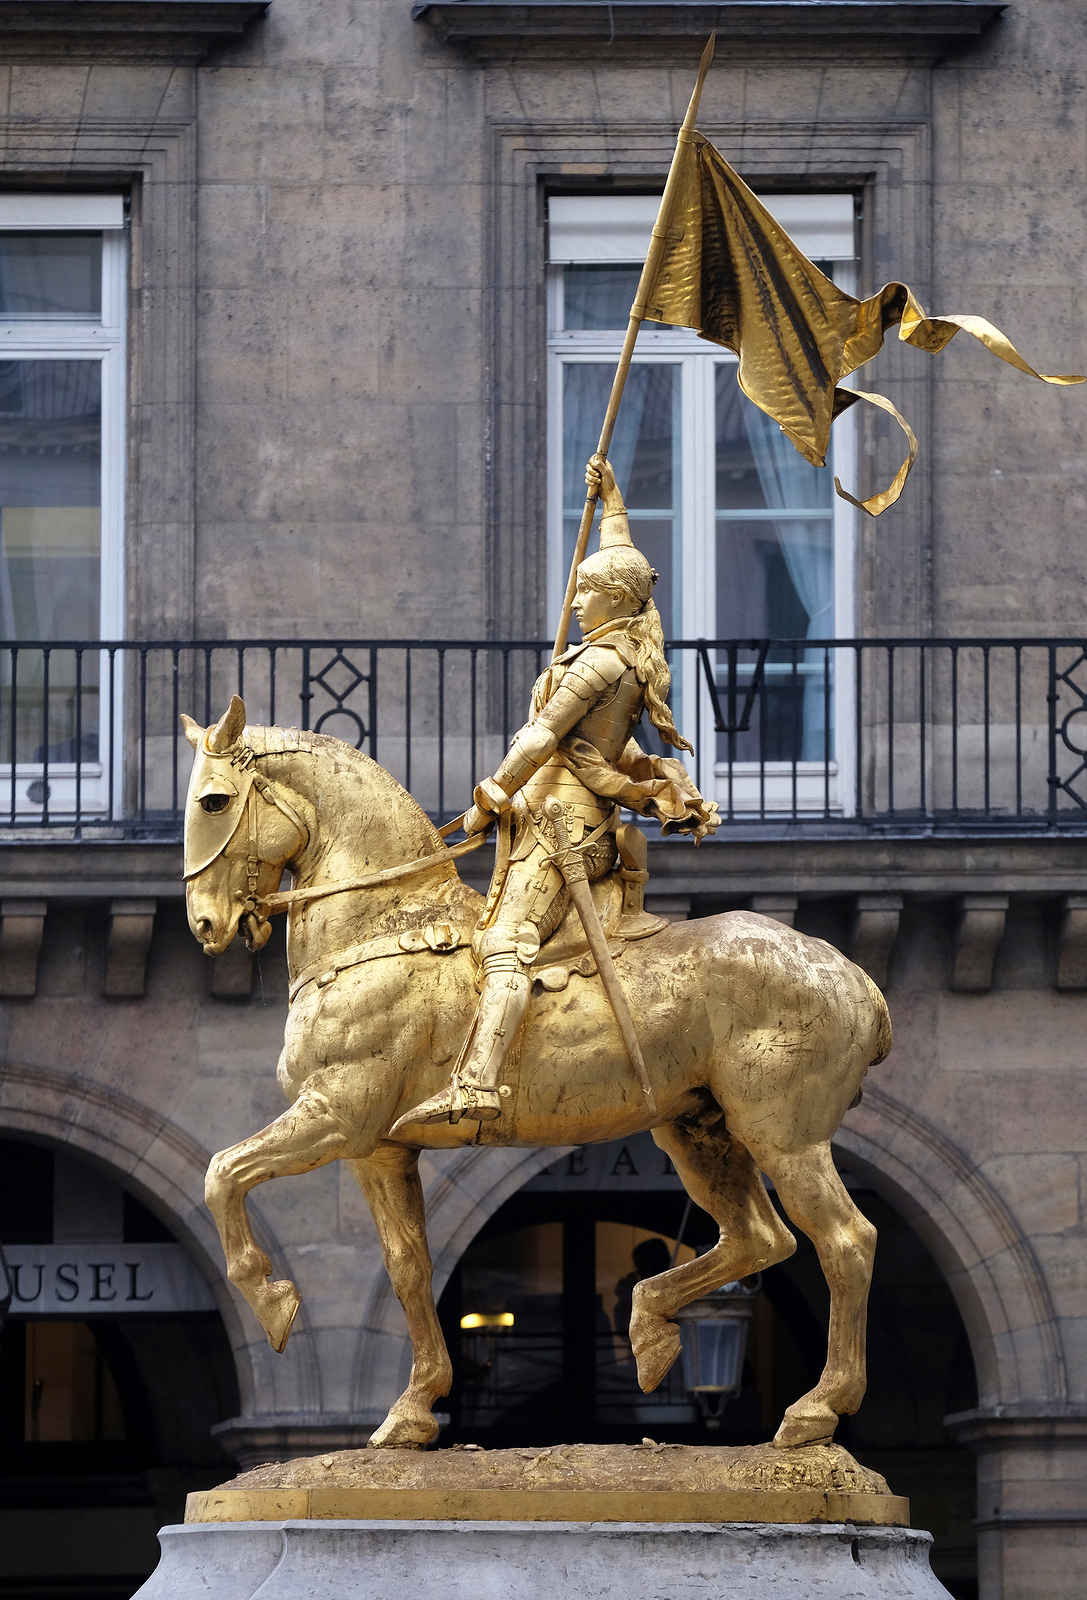 Joan of Arc Statue in Paris, France